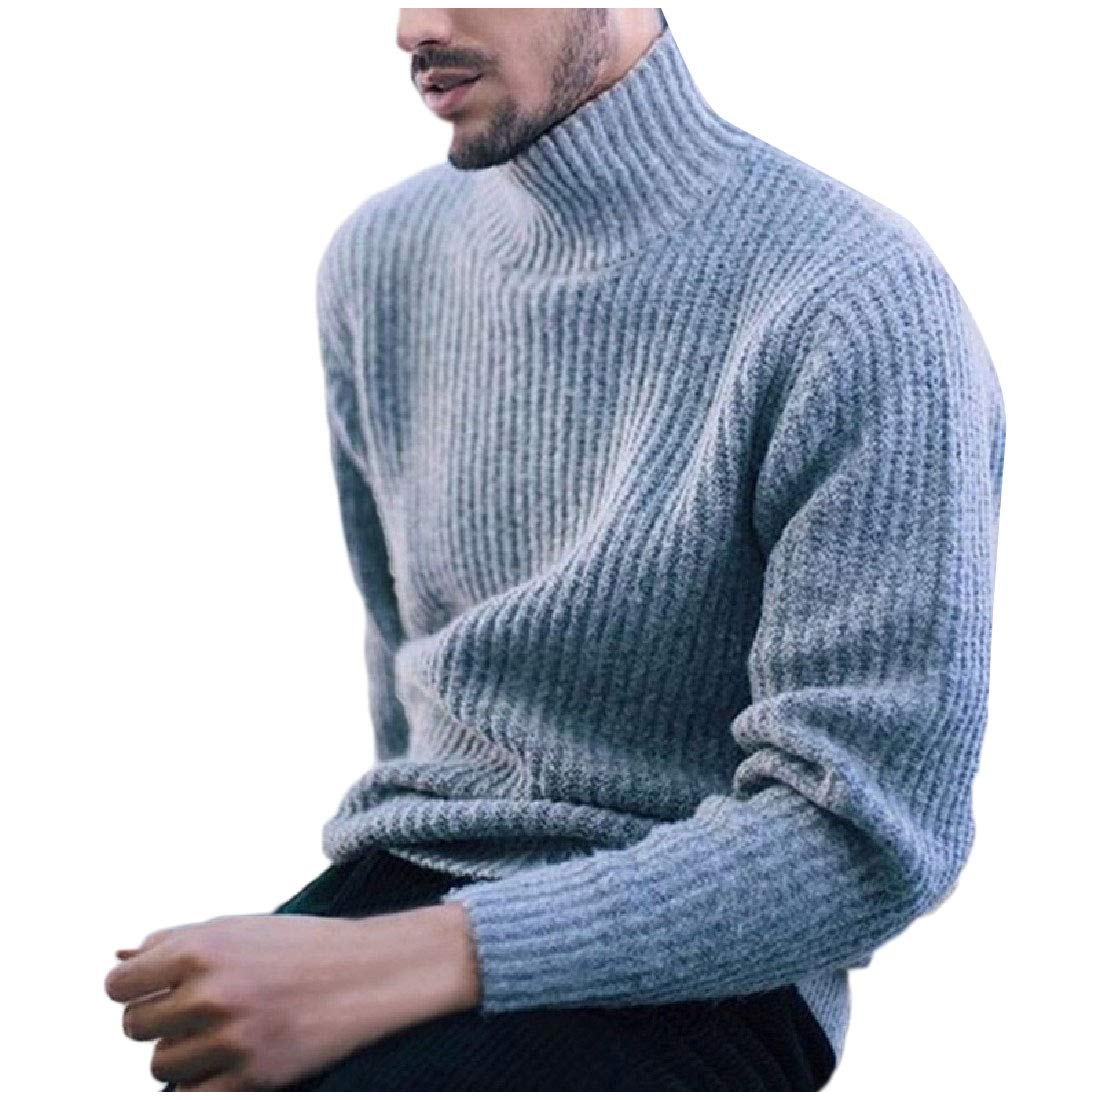 YUNY Mens Winter Solid High Neck Long-Sleeve Knitted Sweater Grey XL